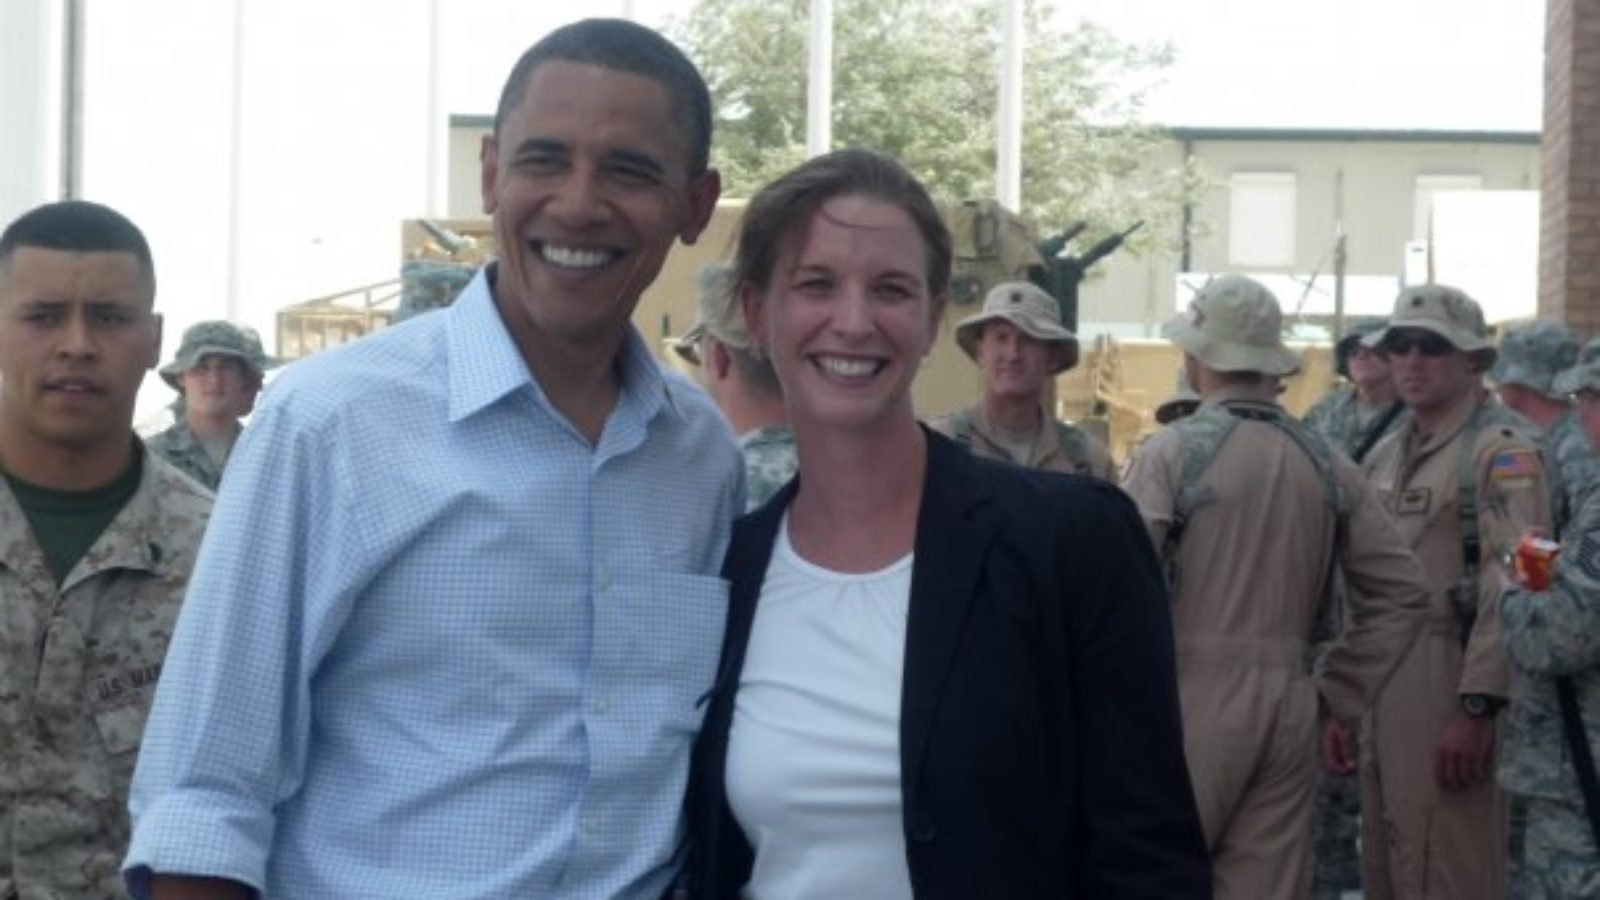 Bailey Hand with President Obama. Military in background